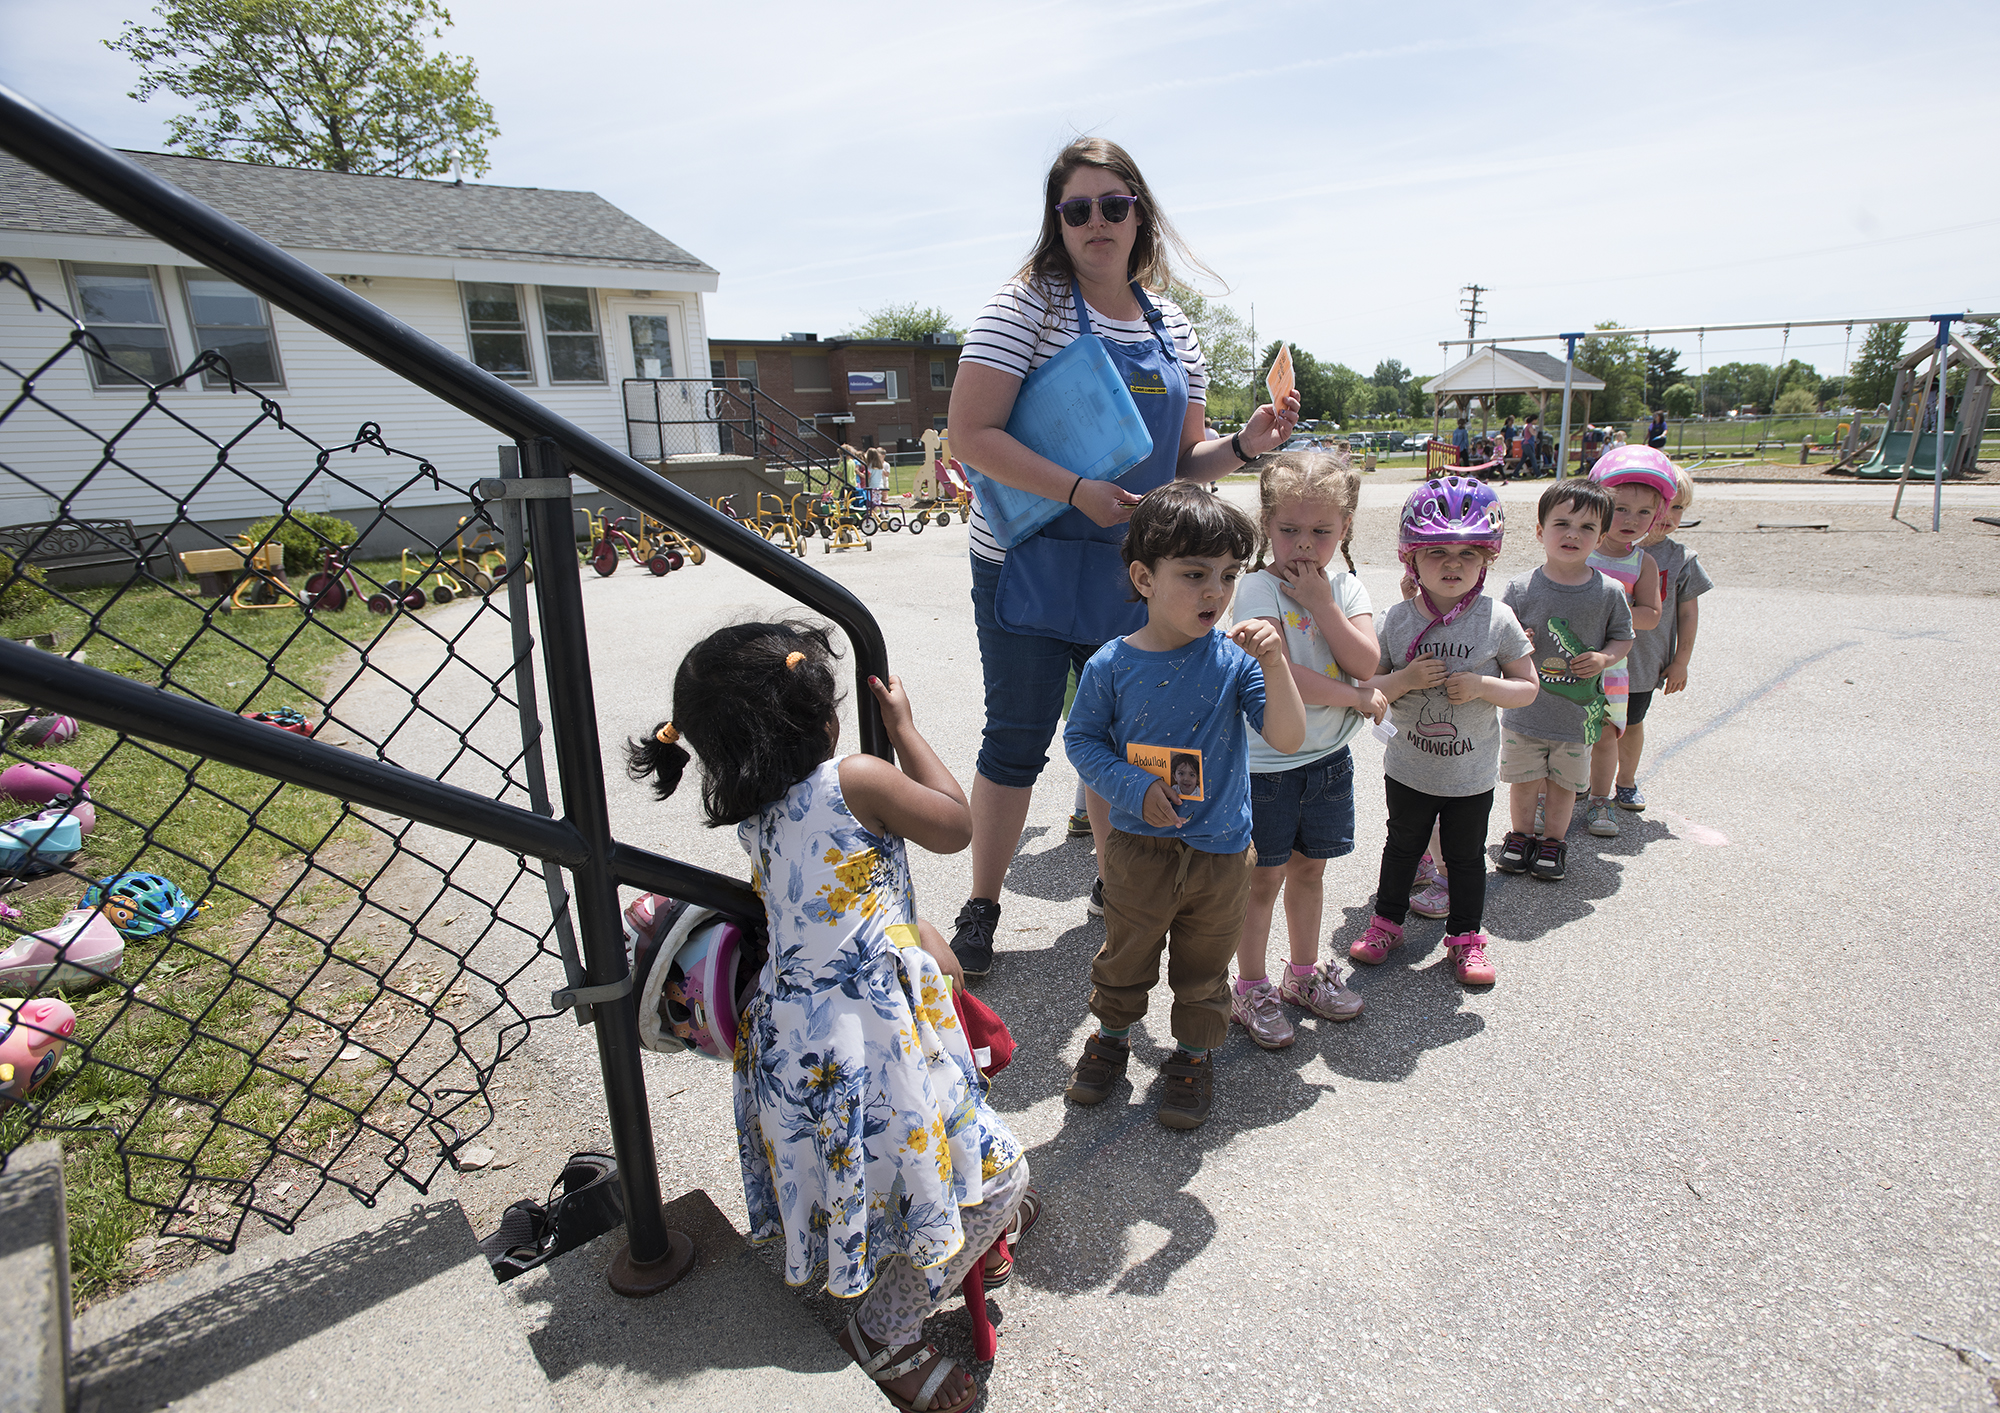 Teacher Ashley Cunningham makes sure all the kids are together before bringing them back inside for lunch at Parkside Children's Learning Center in Bangor in June. (Kevin Bennett photo for Maine Public)